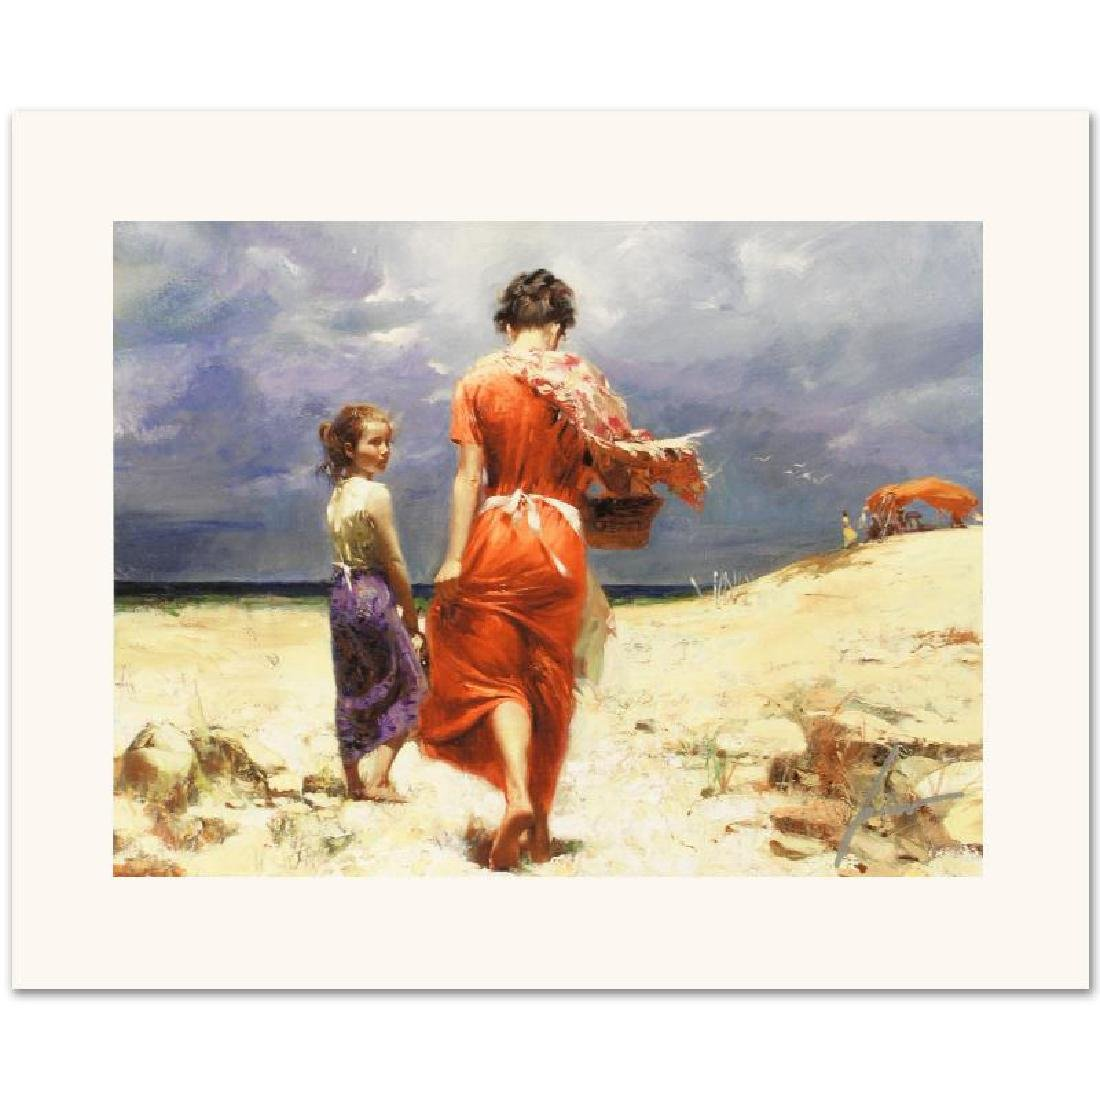 Summer Retreat Limited Edition Giclee on Canvas by Pino